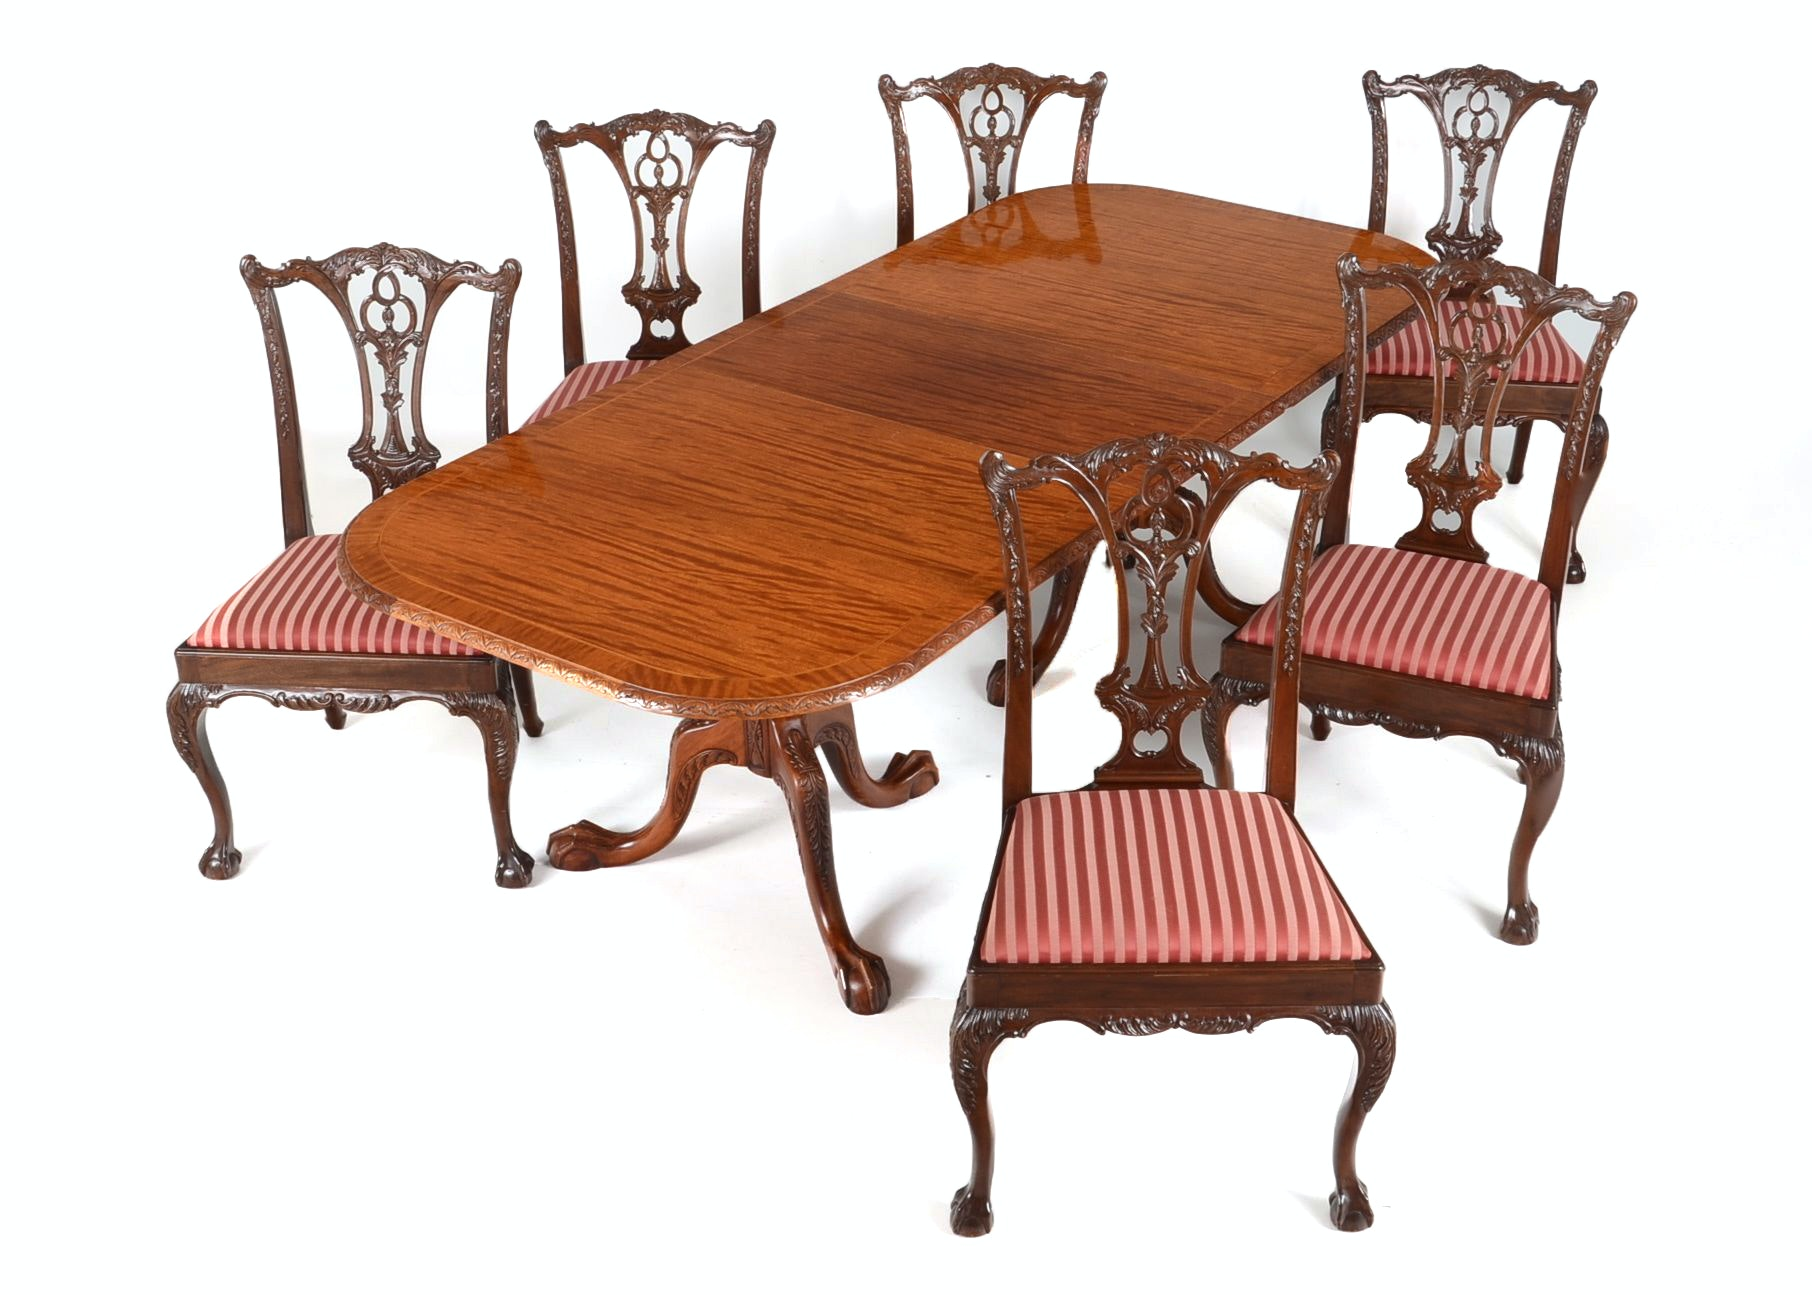 Carved Mahogany Dining Table Six Chippendale Style Side  : DSC2218jpgixlibrb 11 from www.ebth.com size 880 x 880 jpeg 143kB